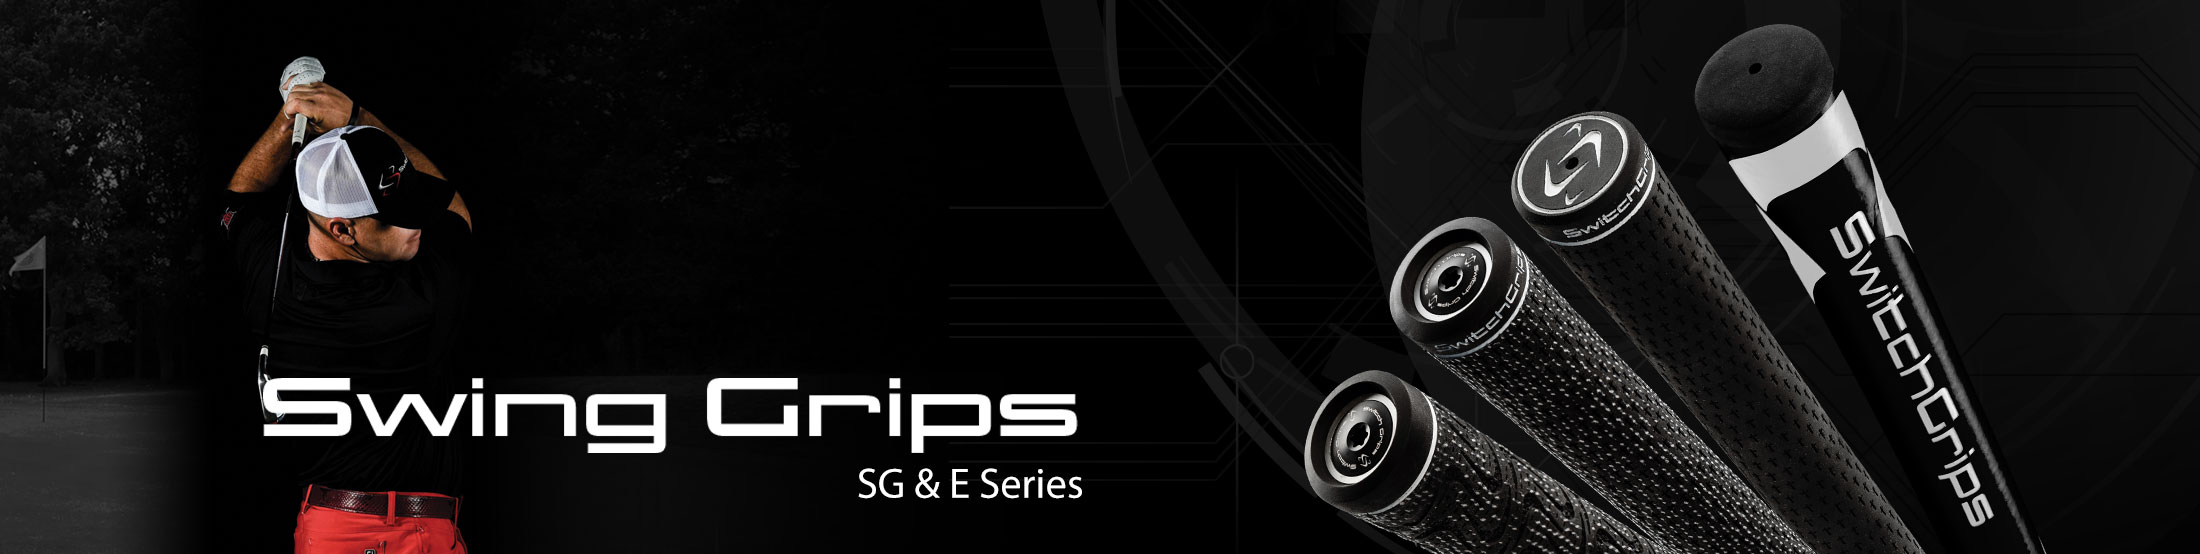 SwitchGrips - Golf Swing Grips - Sweden